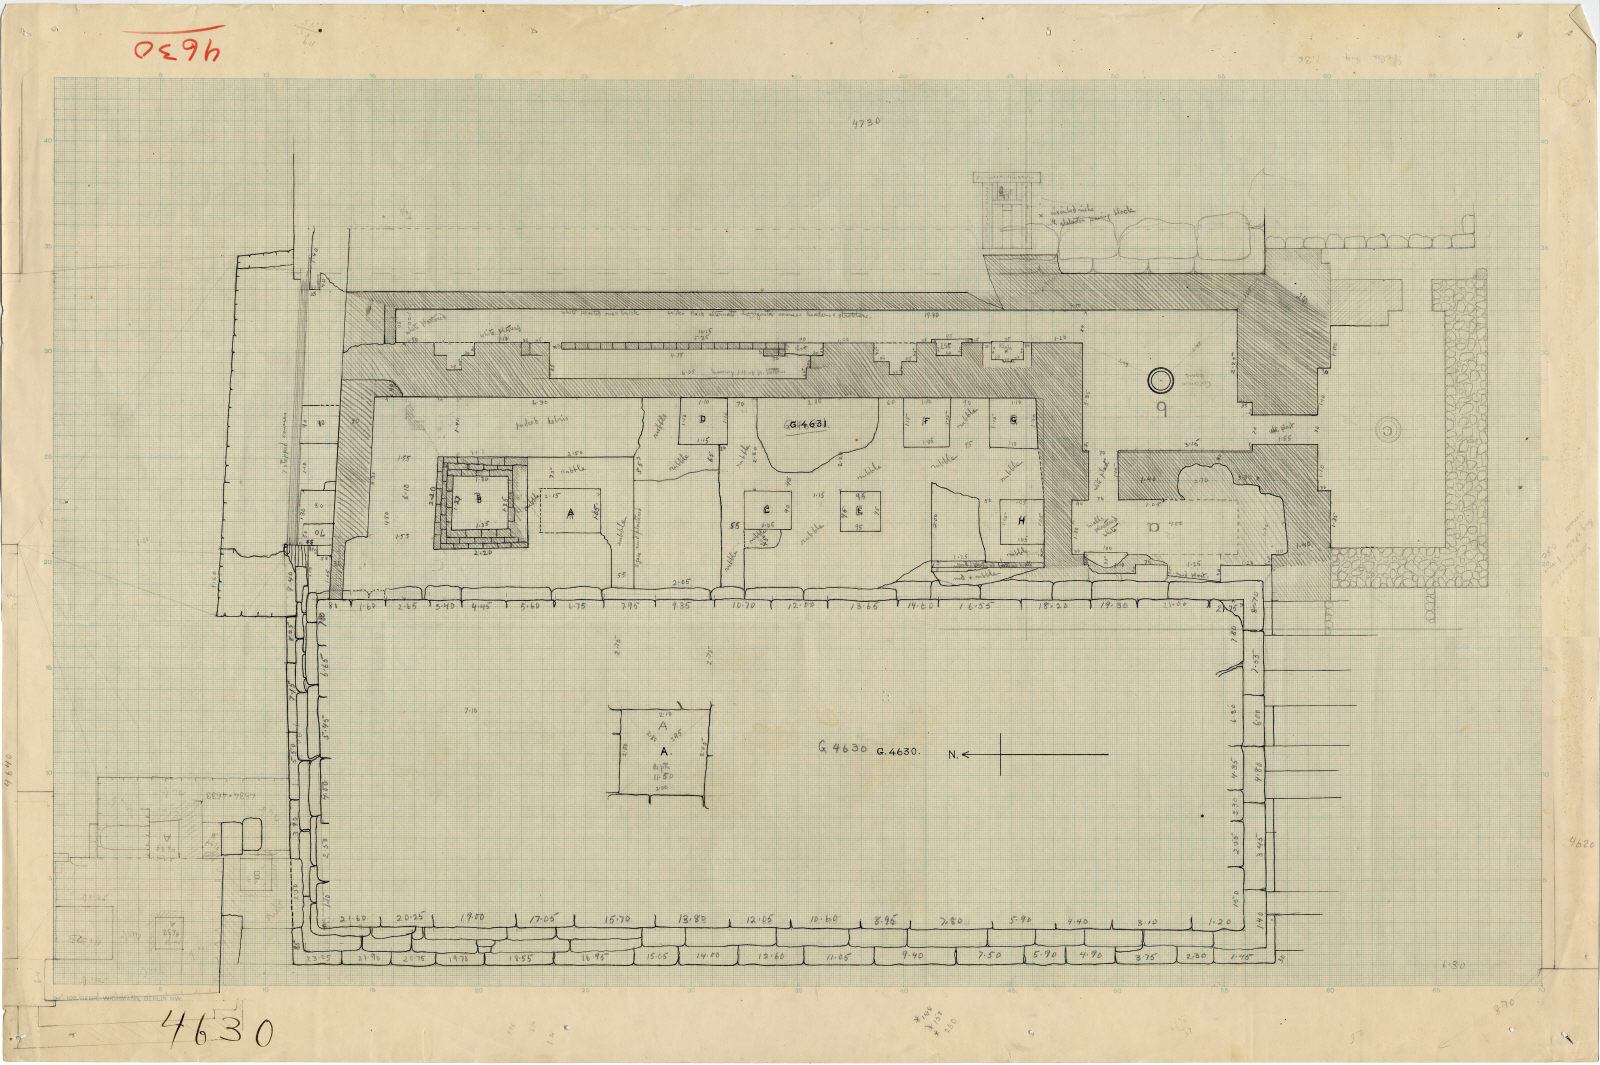 Maps and plans: Plan of G 4630, with positions of G 4631, G 4632, G 4633+4634, G 4730